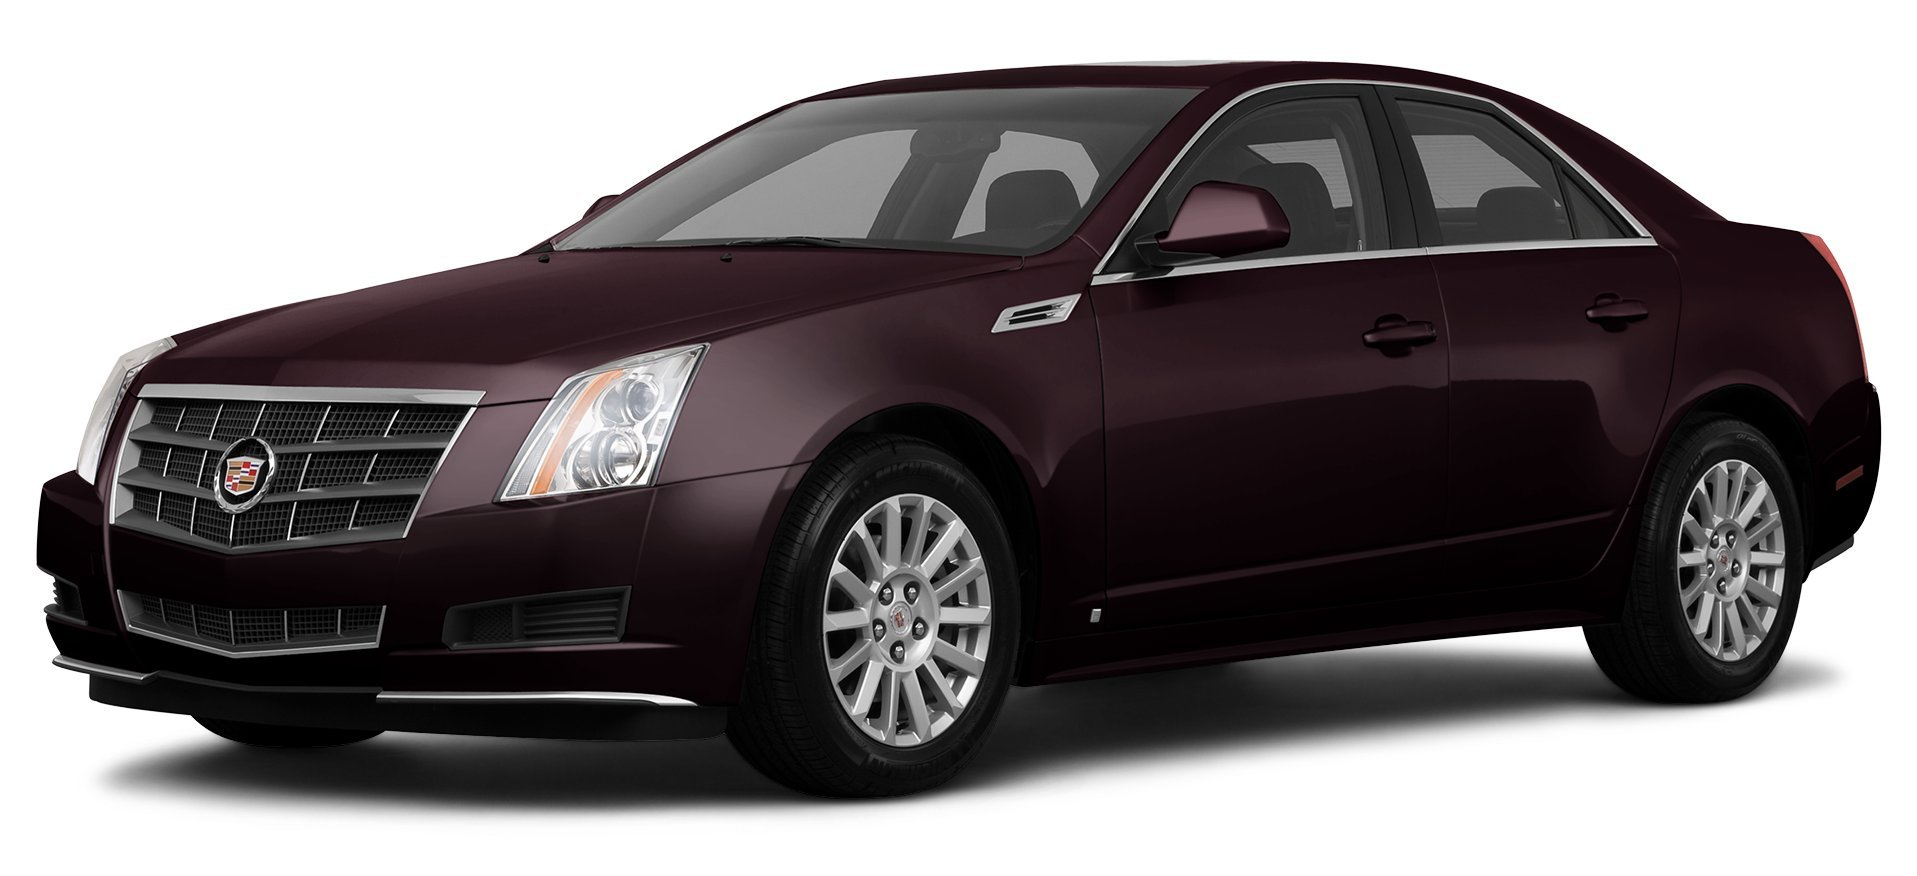 2010 cadillac cts reviews images and specs vehicles. Black Bedroom Furniture Sets. Home Design Ideas